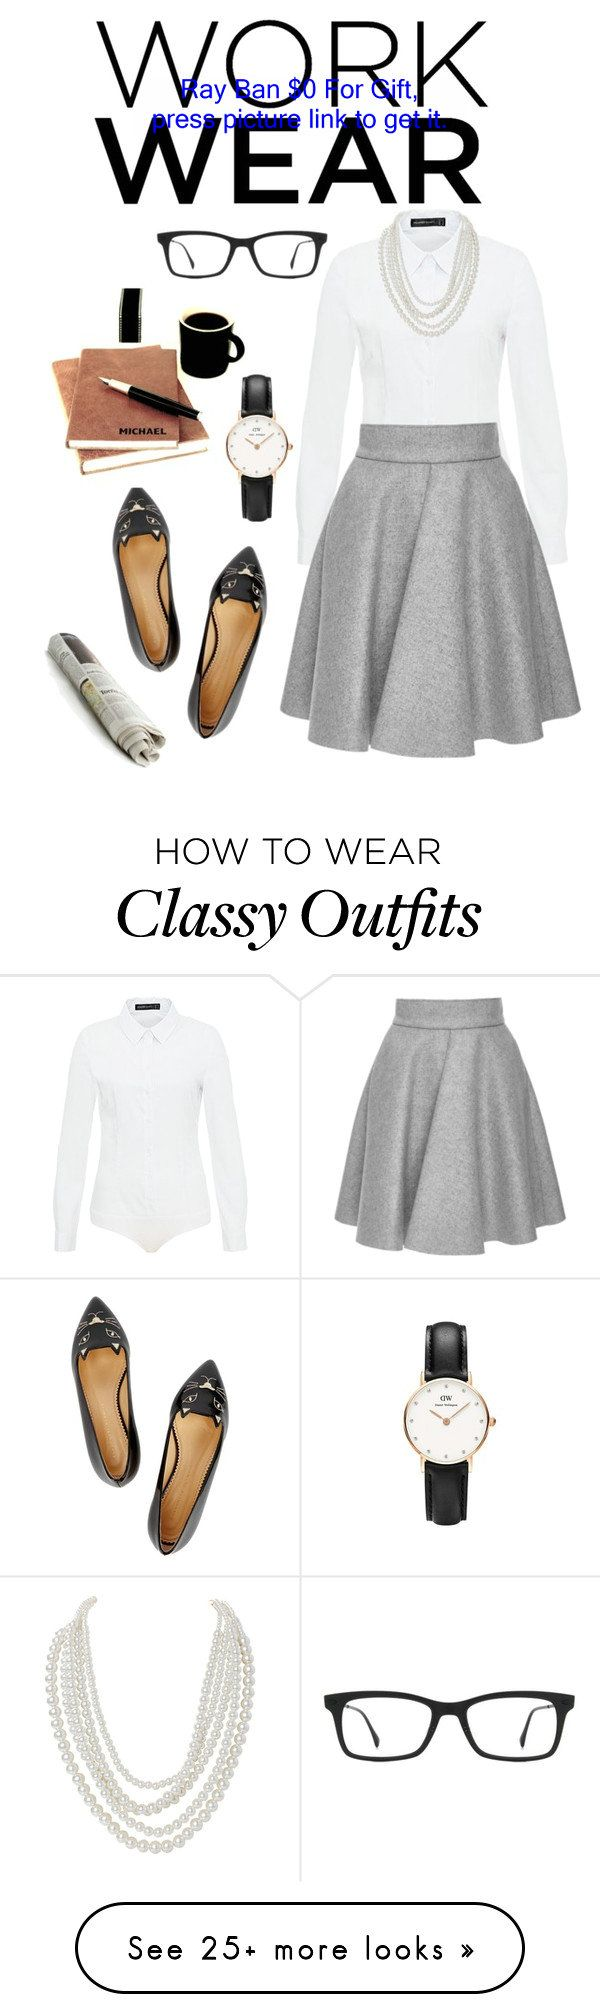 Work Wear by msh820 on Polyvore featuring Hallhuber, MSGM, Ray-Ban, Charlotte Olympia, Humble Chic and Daniel Wellington